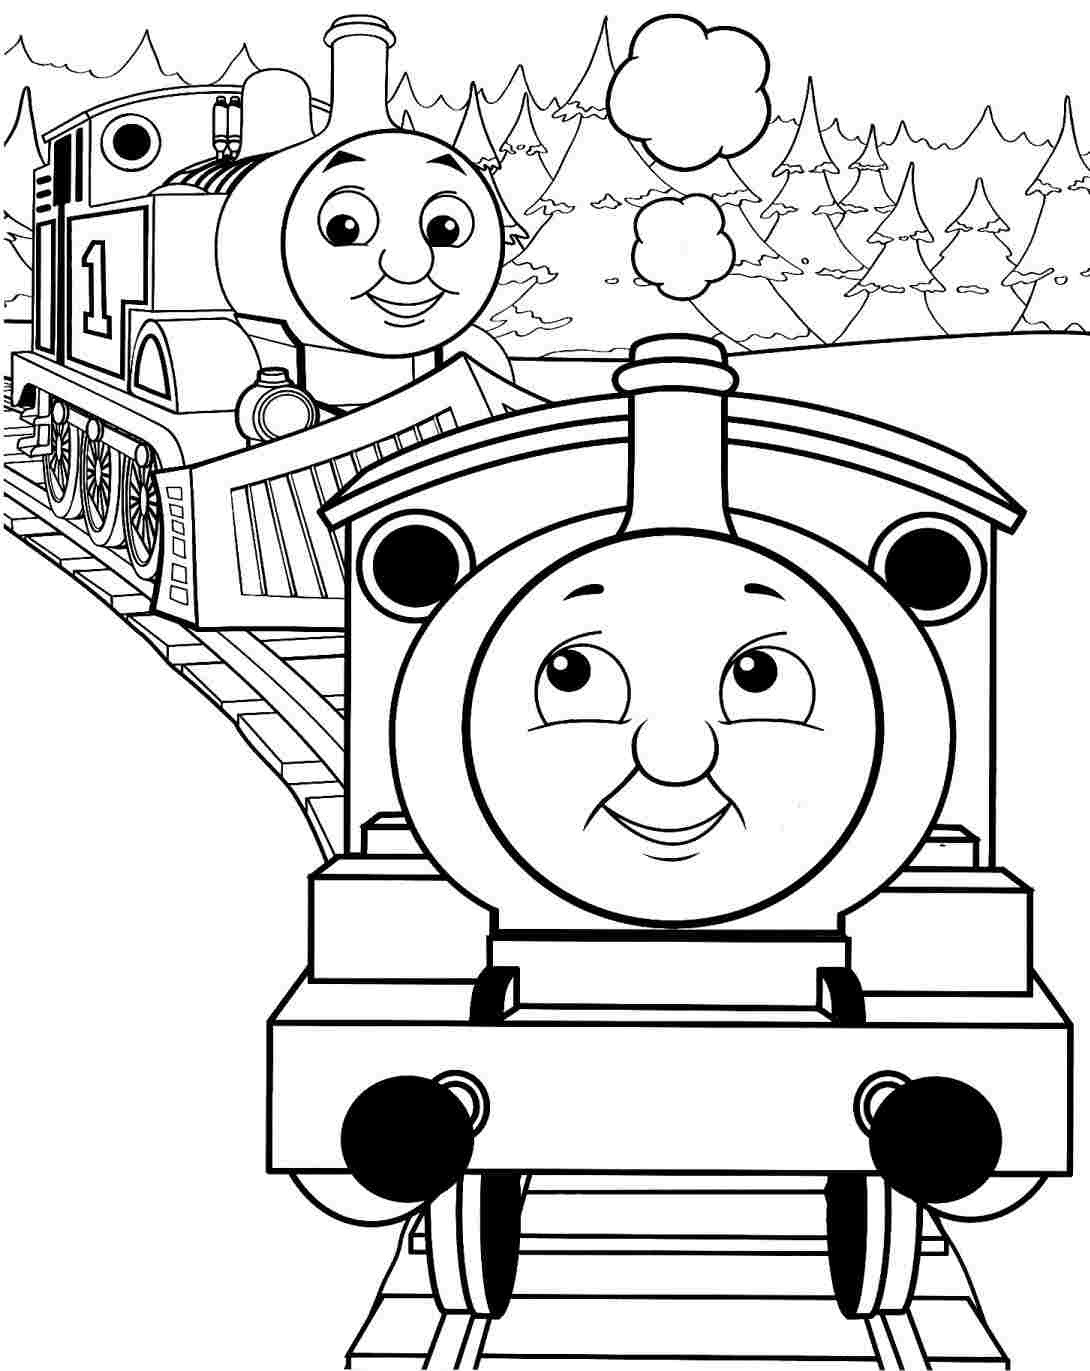 Drawn railroad thomas the tank engine  Pages train Coloring coloring